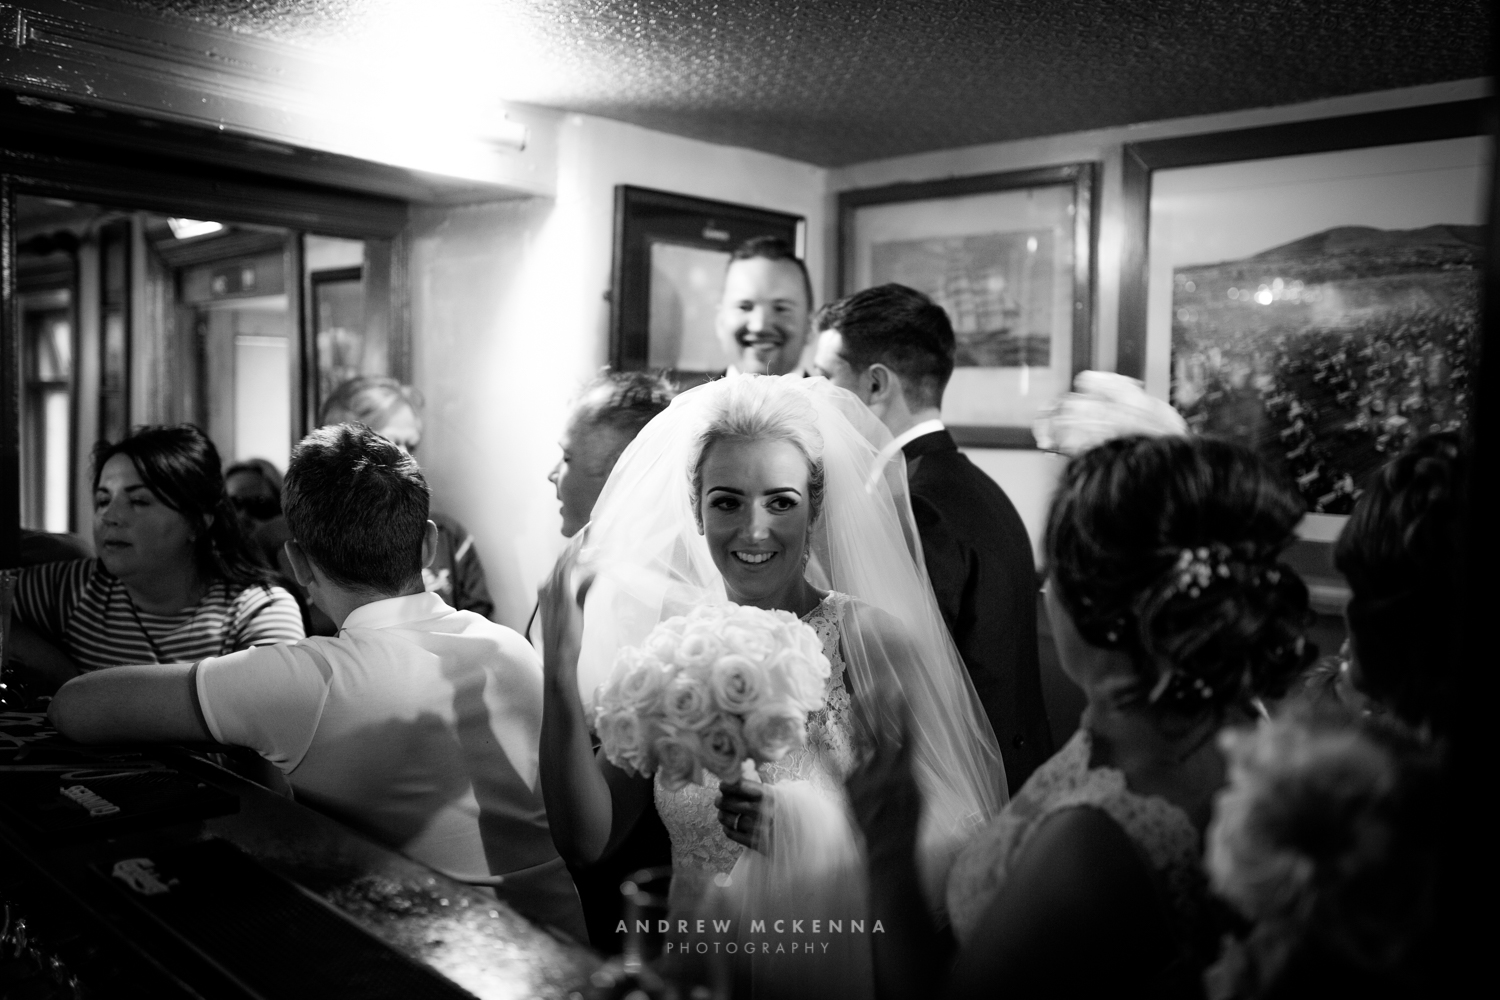 PJ O'Hares Wedding Photography Carlingford, County Louth Four Seasons hotel, Photography By Andrew McKenna Photography Newcastle County Down, Northern Ireland.